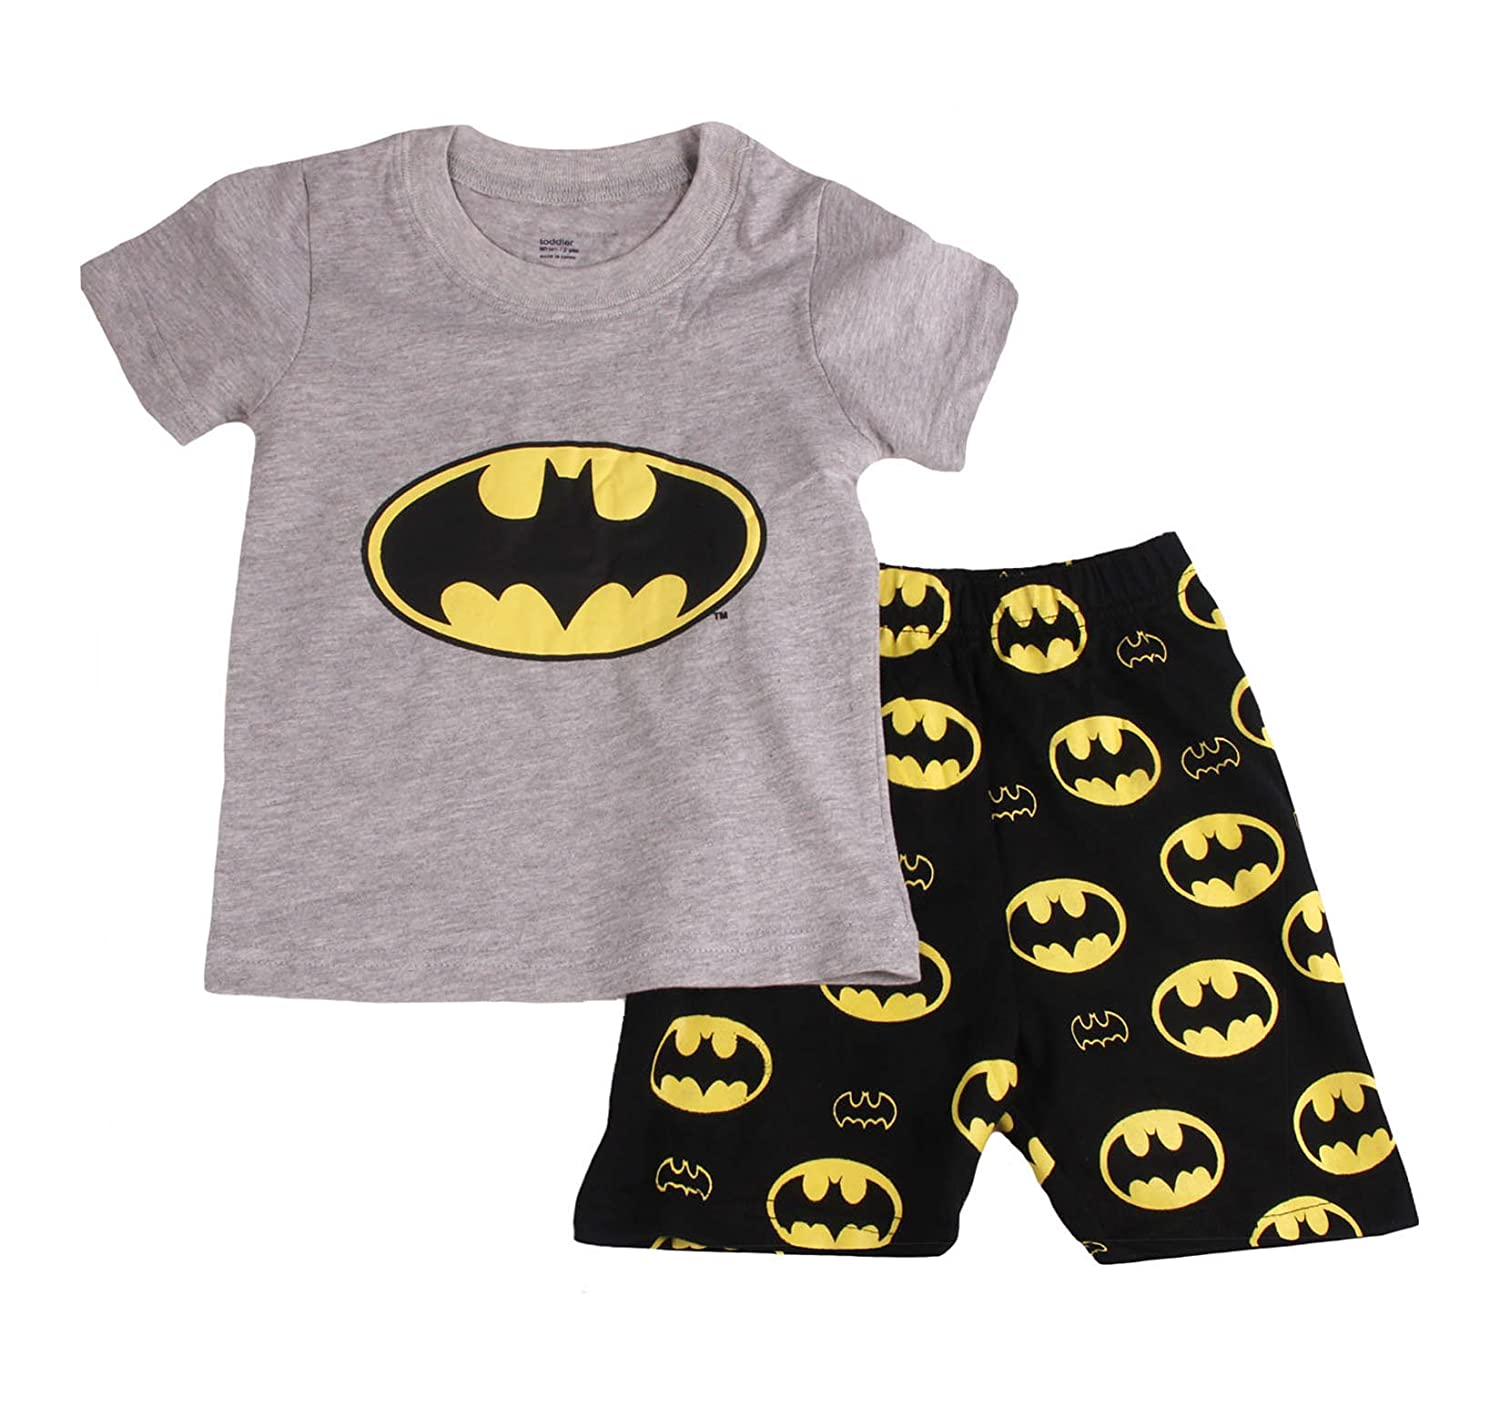 Gray Bat Boys Shorts 2 Piece Pajama Set 100% Cotton G6057 Size 6Mos 14Yrs